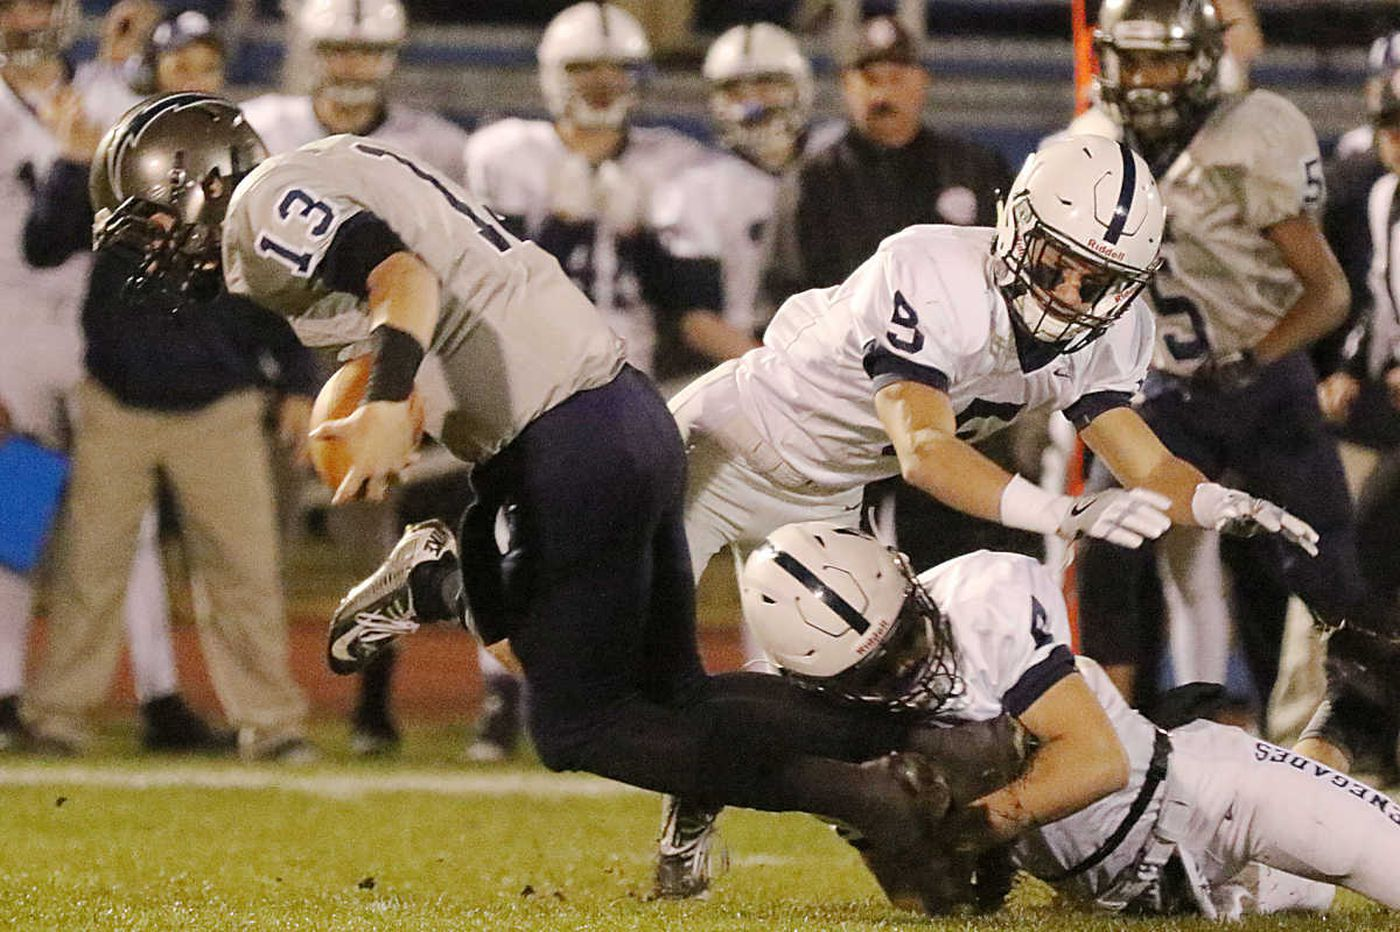 Timber Creek to play Lenape in Group 4 title game